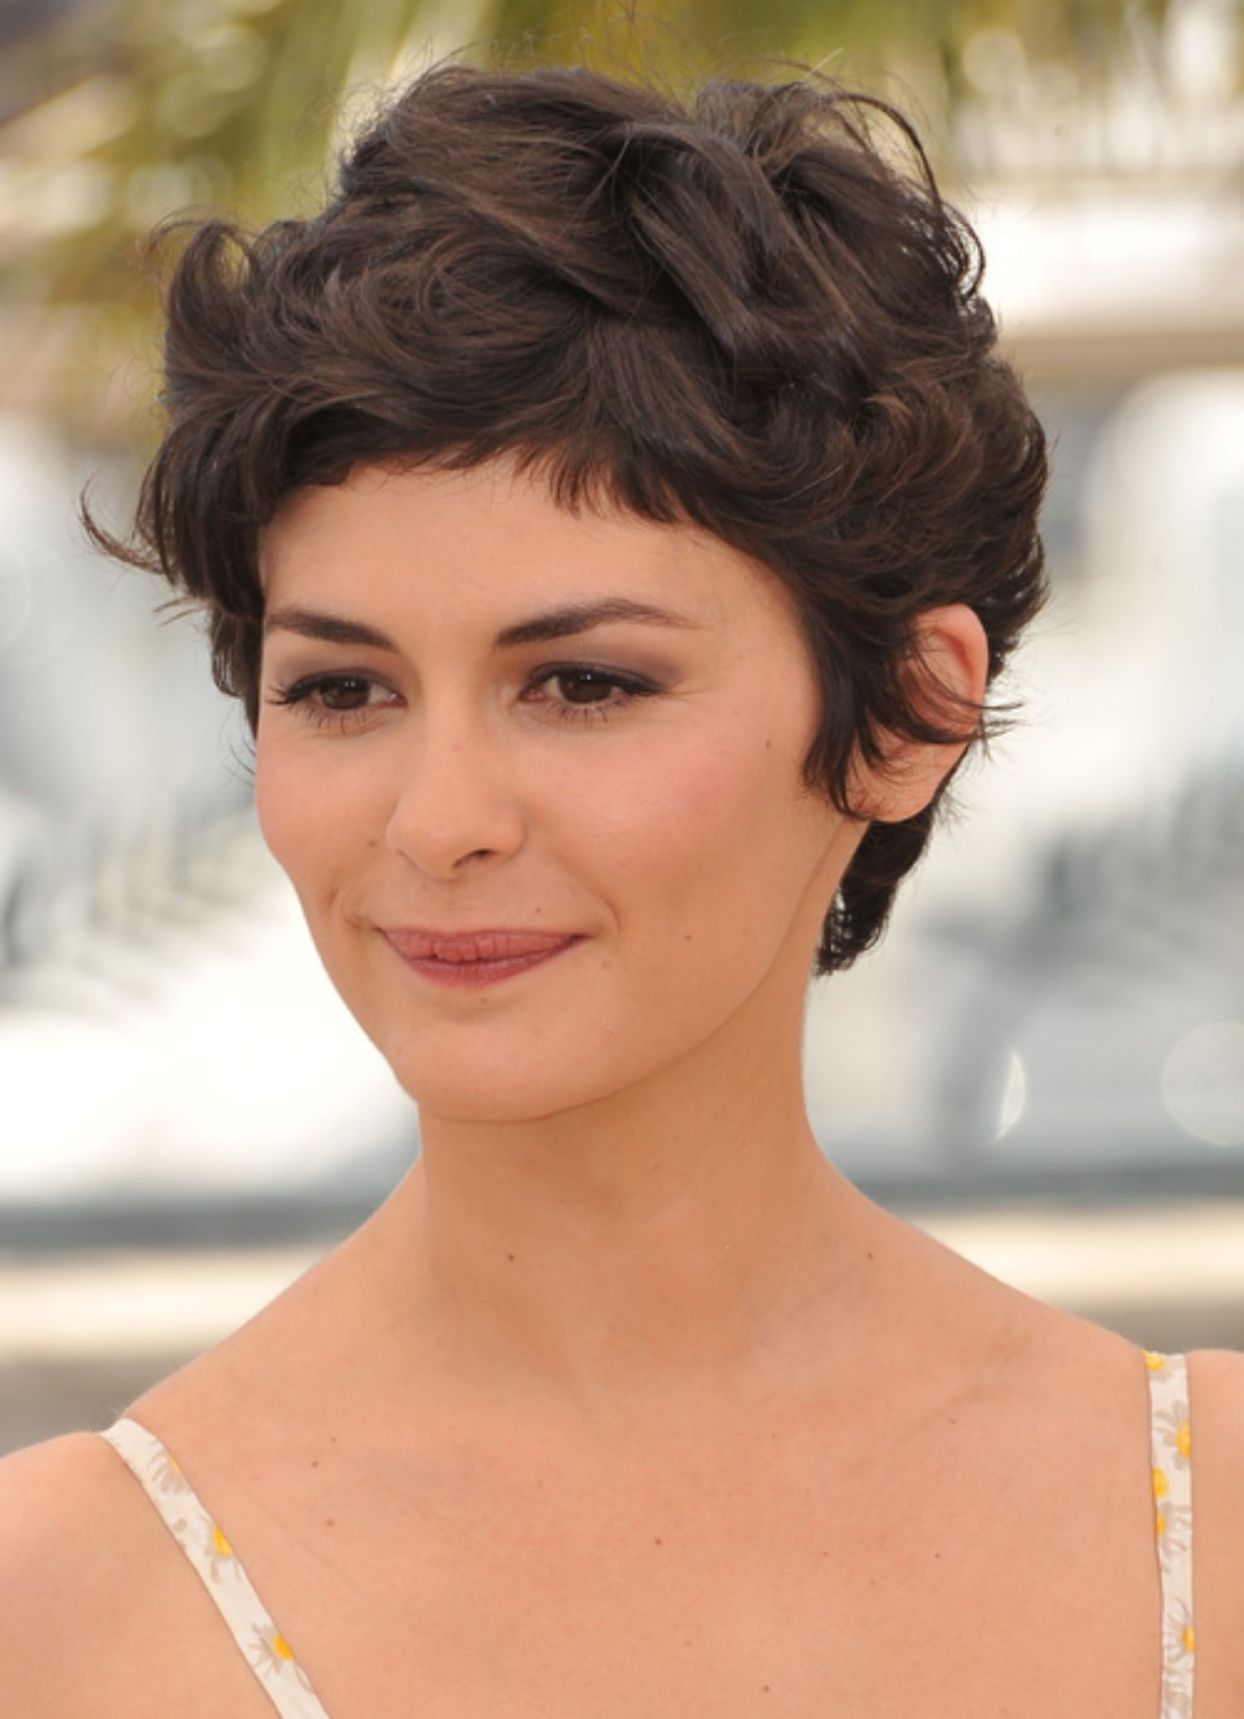 Pixie Haircuts For Thick Hair 50 Ideas Of Ideal Short Haircuts Thick Hair Styles Pixie Haircut For Thick Hair Short Hairstyles For Thick Hair